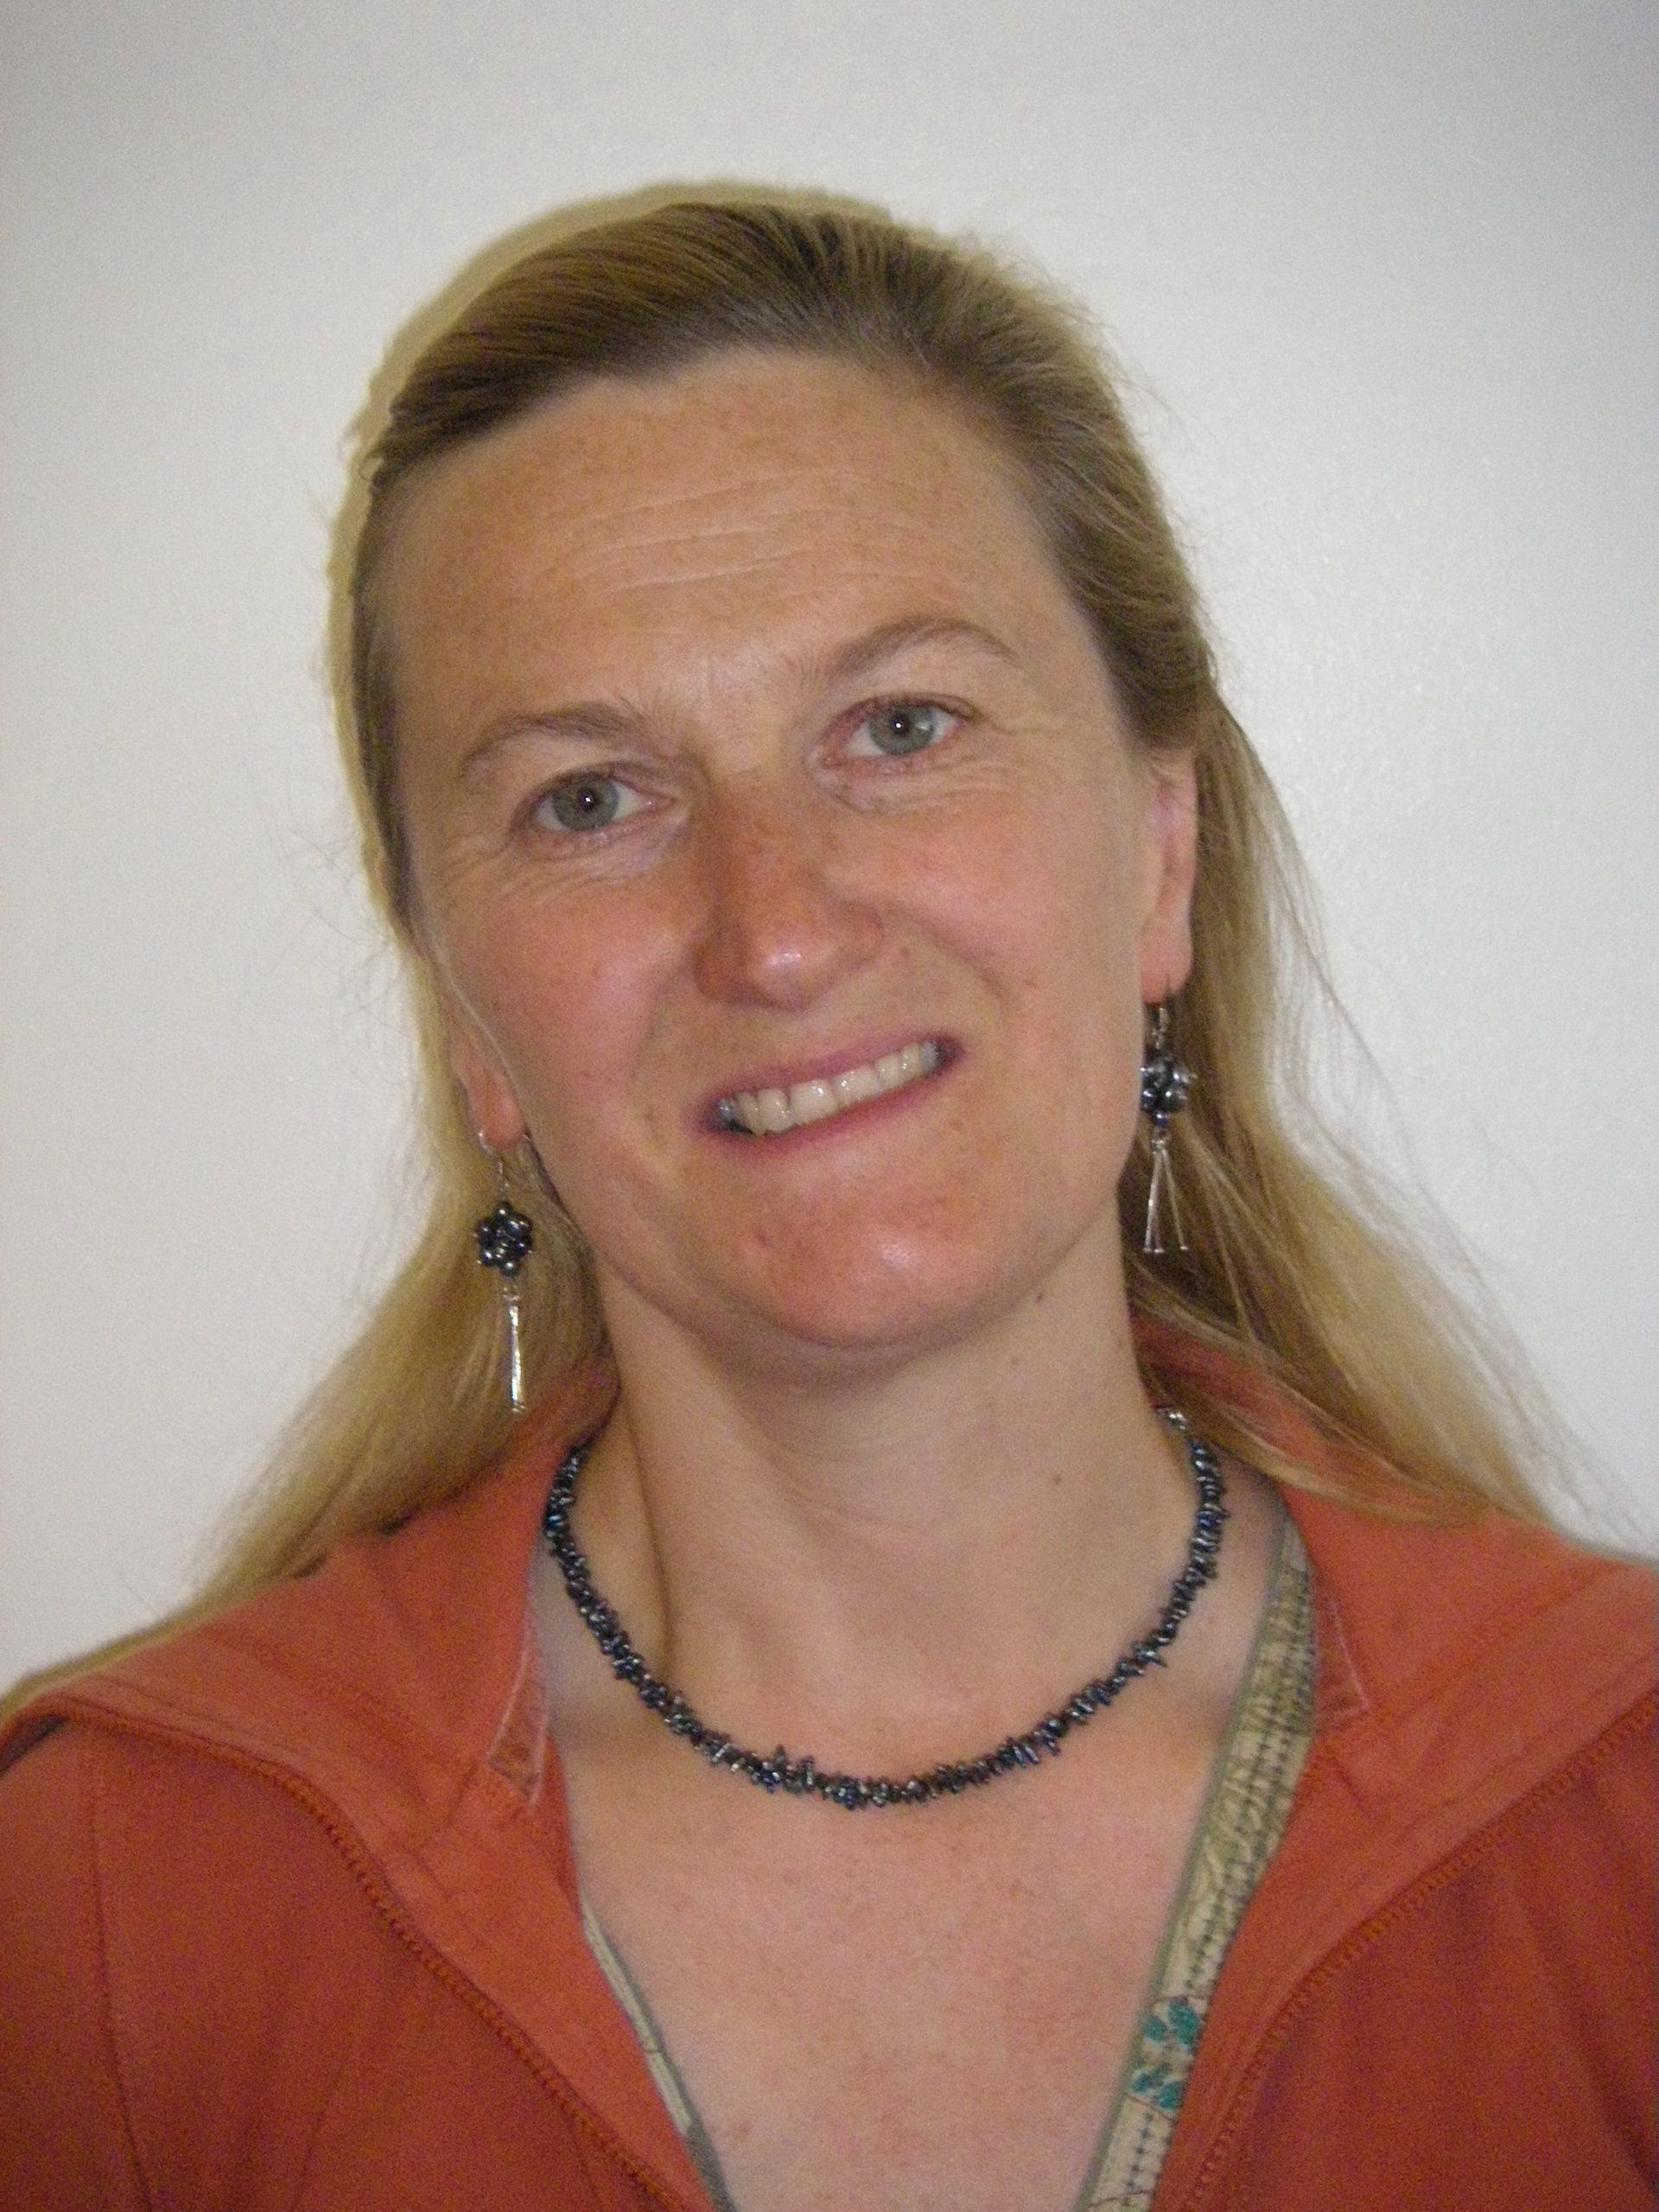 Helen Jarvis PhD, Reader in Urban Social Geography at Newcastle University, United Kingdom